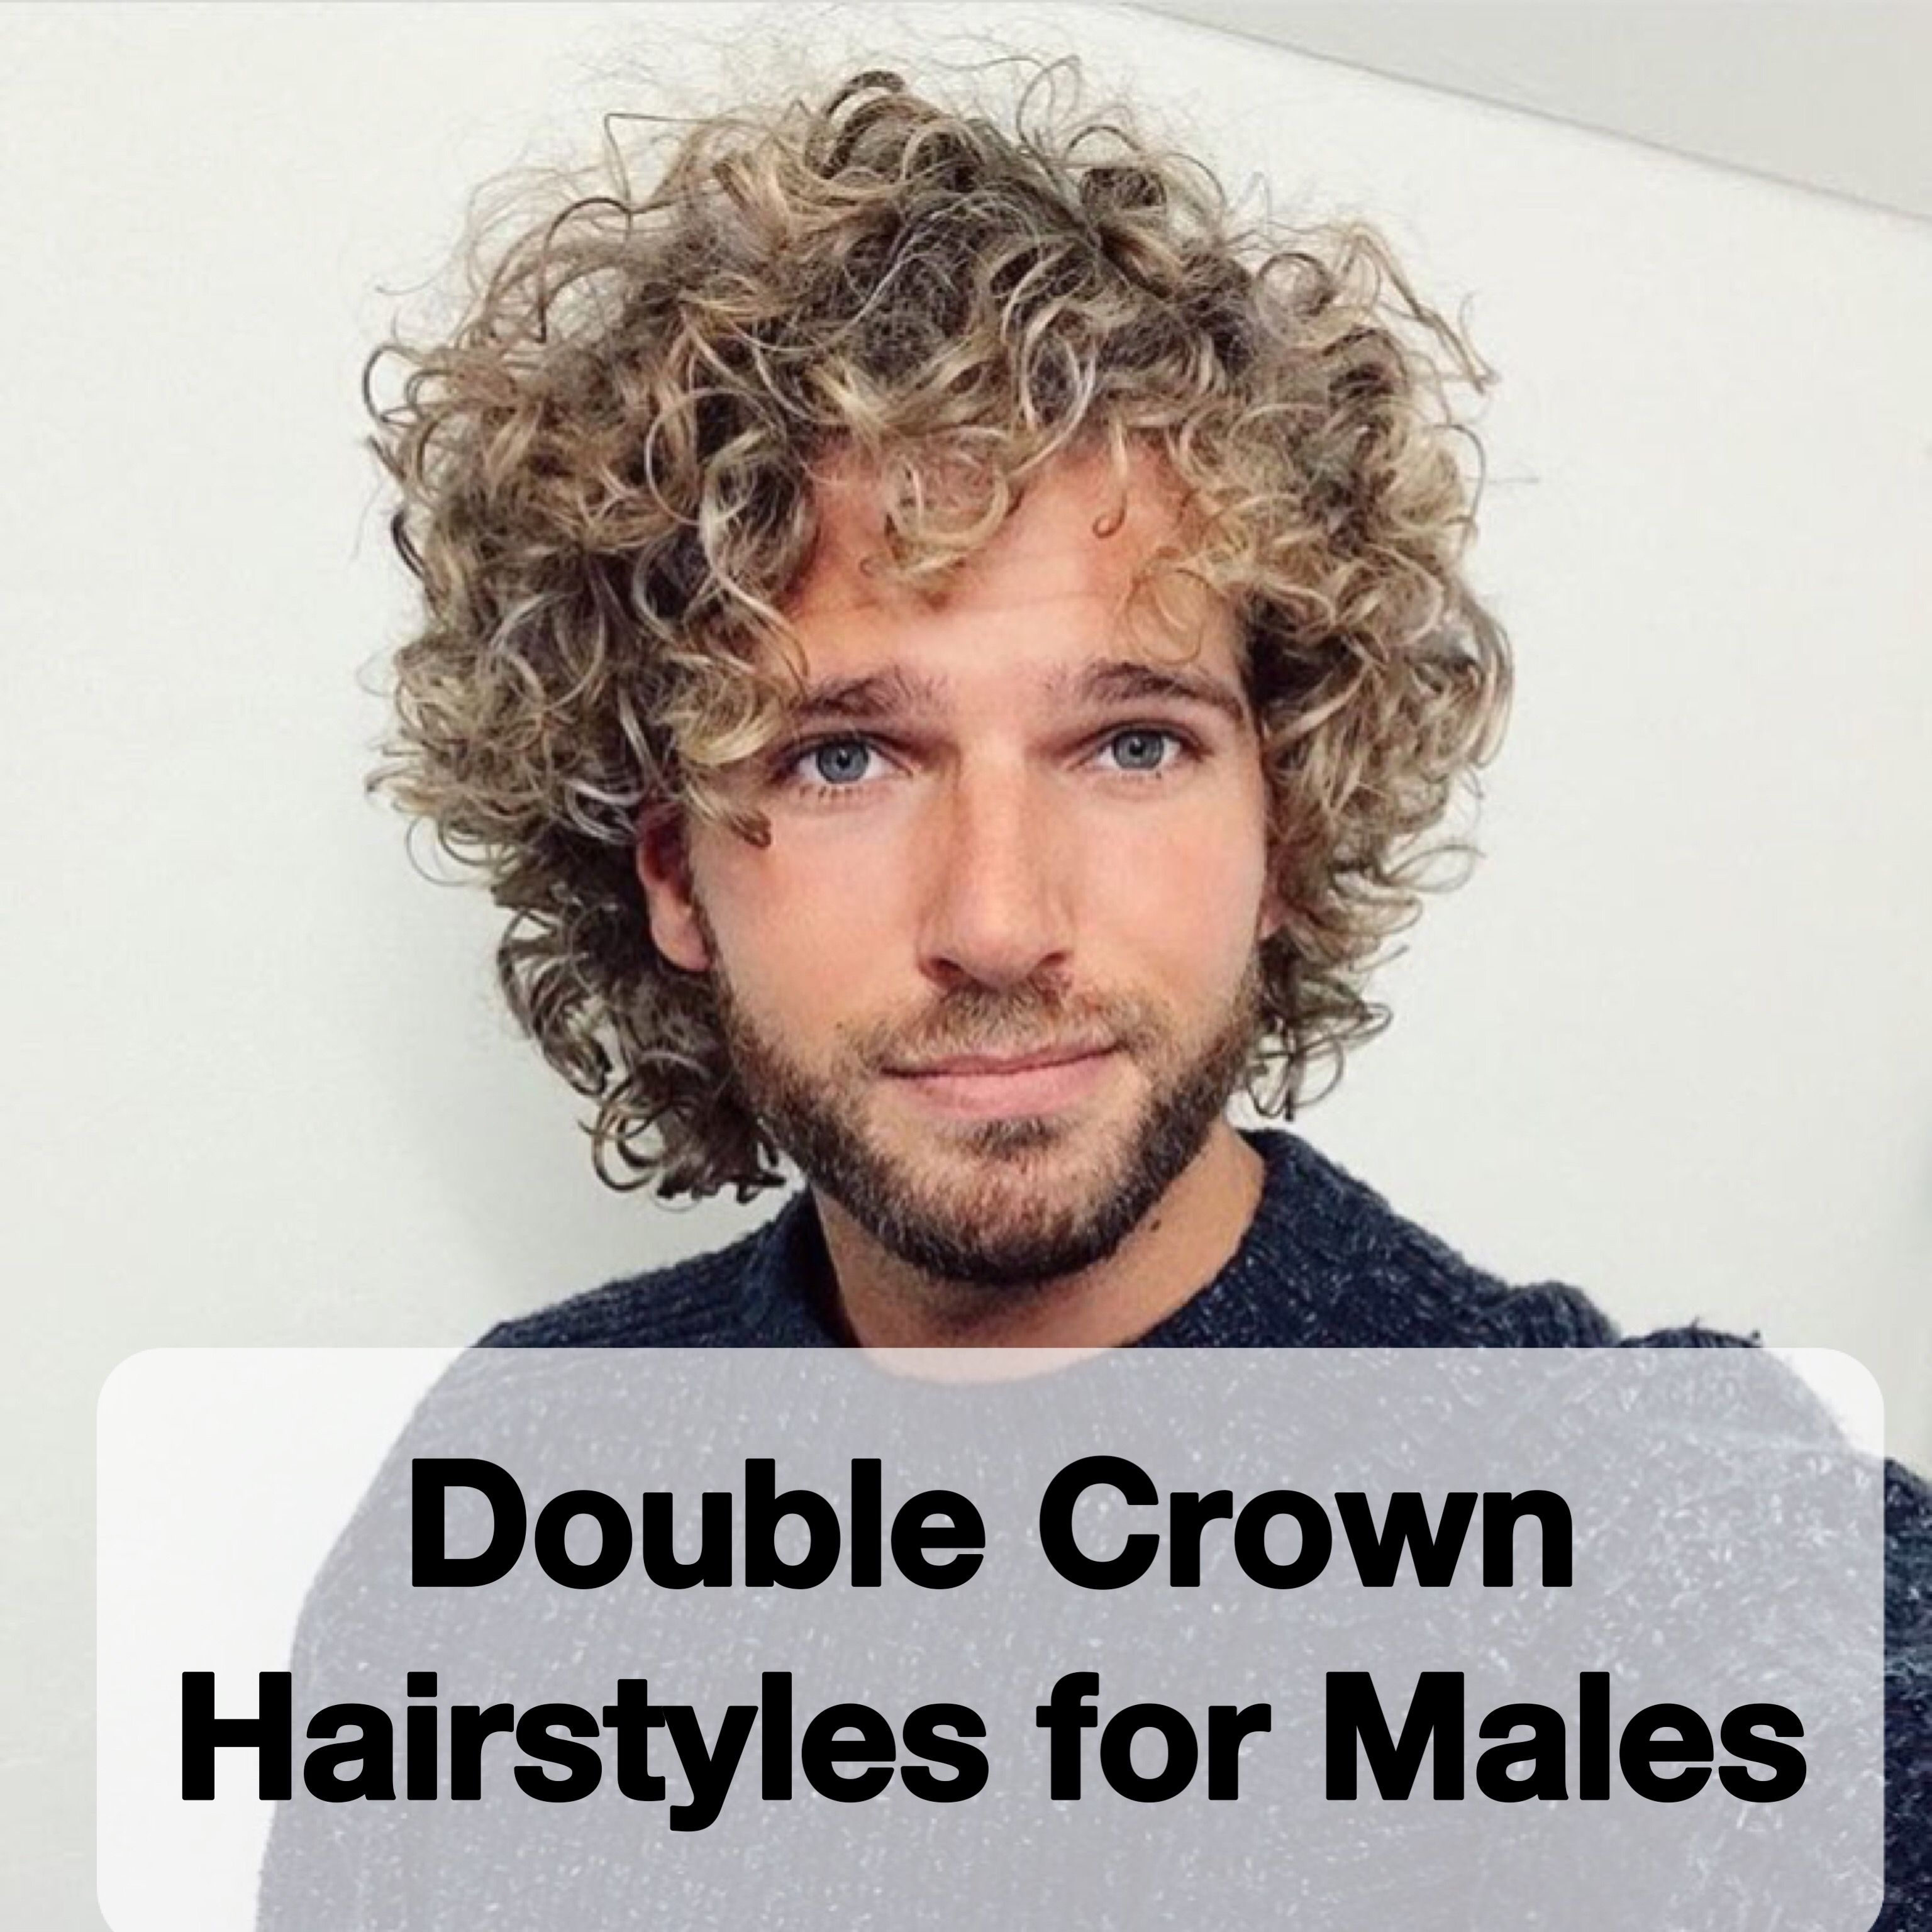 double crown hairstyles for males | curly & wavy hair